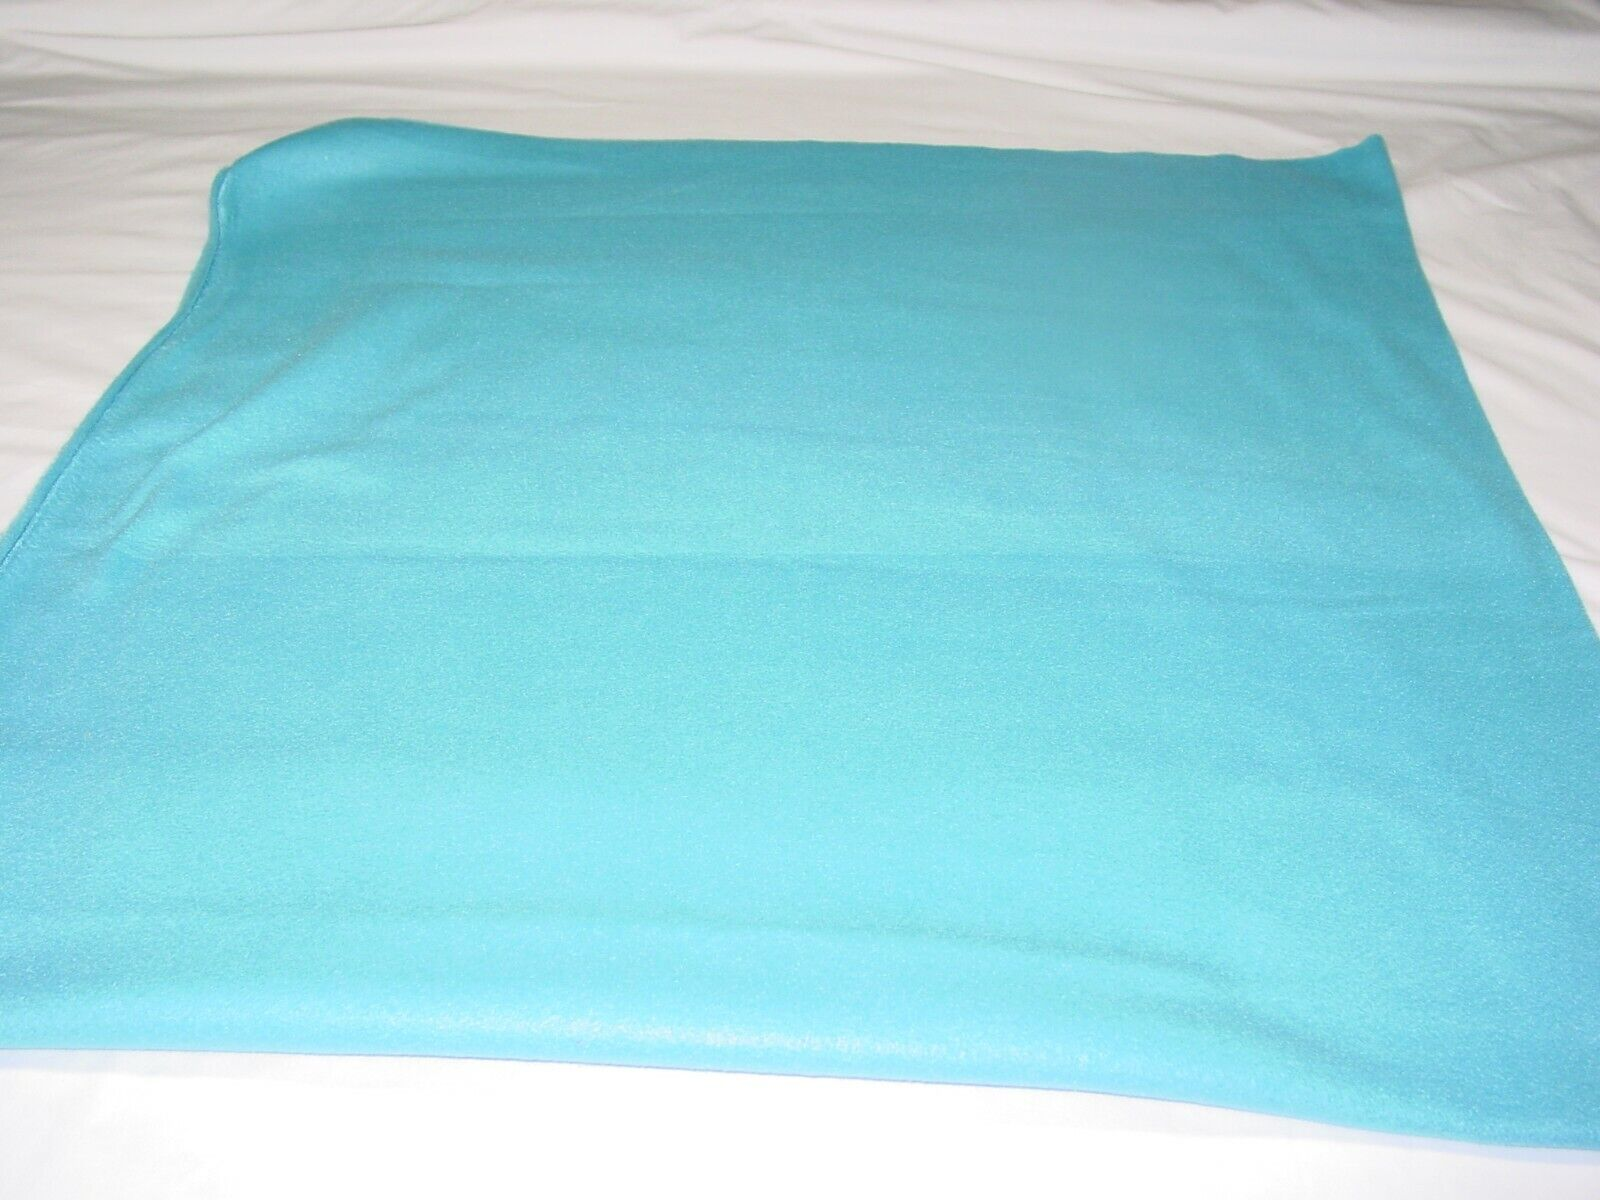 FLEECE TURQUOISE SOLID FABRIC REMNANT LENGTH 34 X WIDTH 61  - $13.50